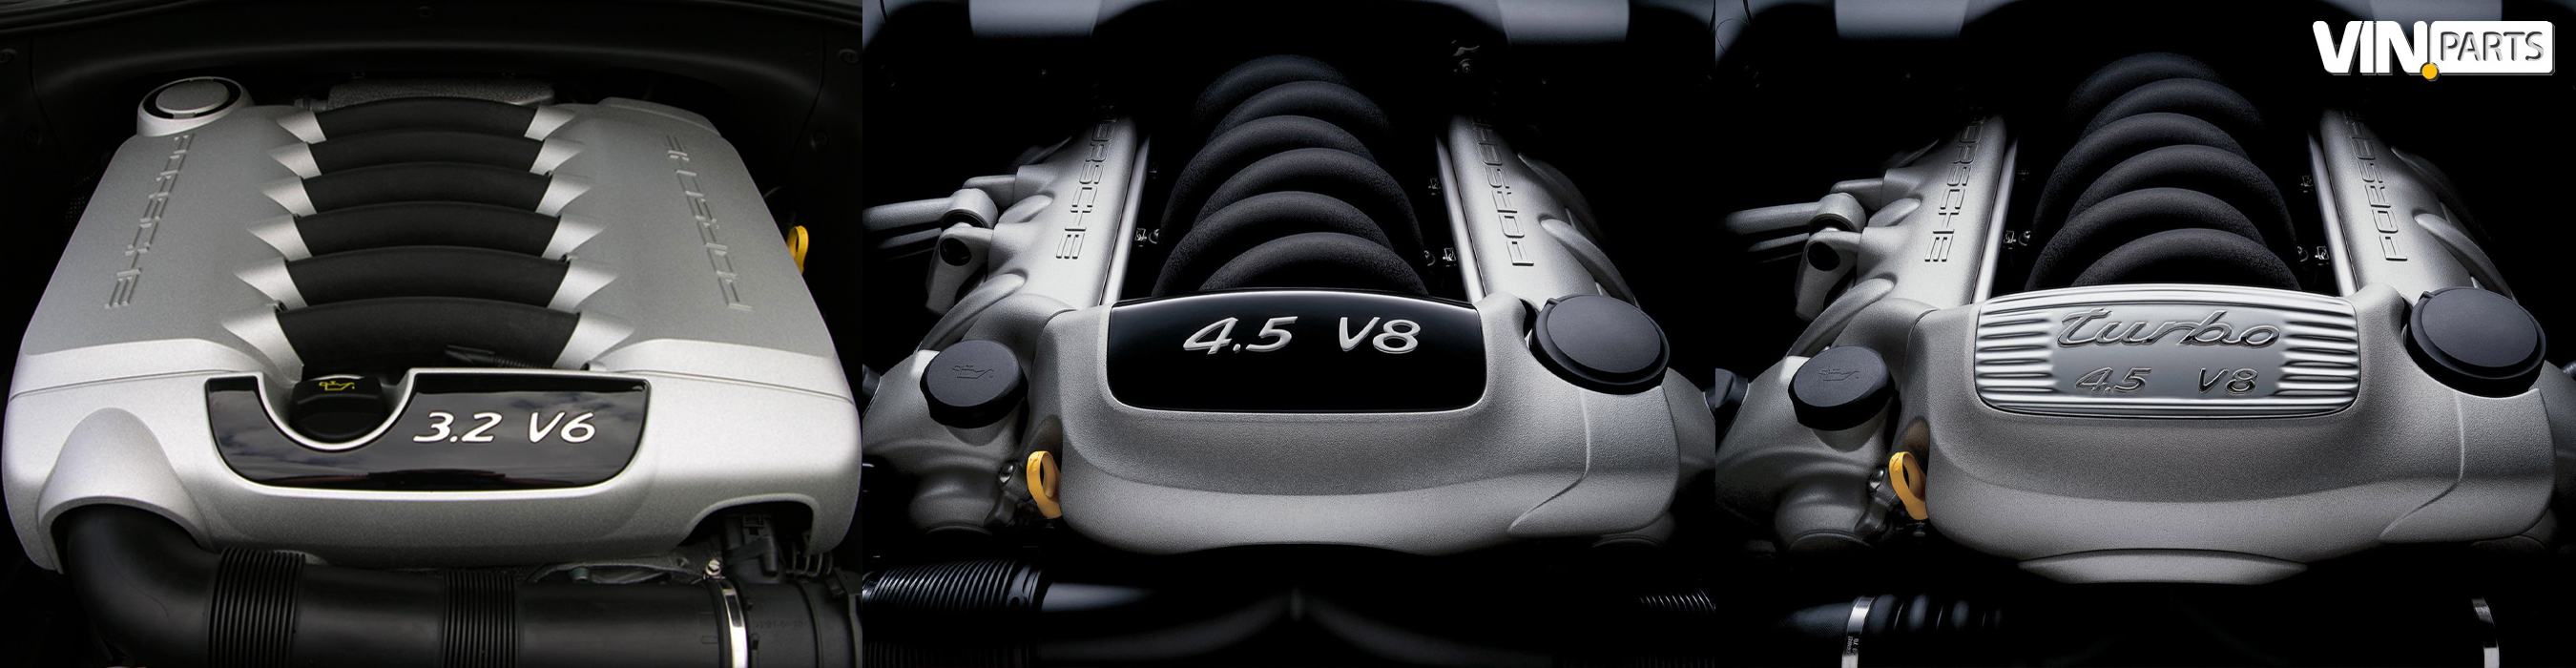 porsche_cayenne_955_engines